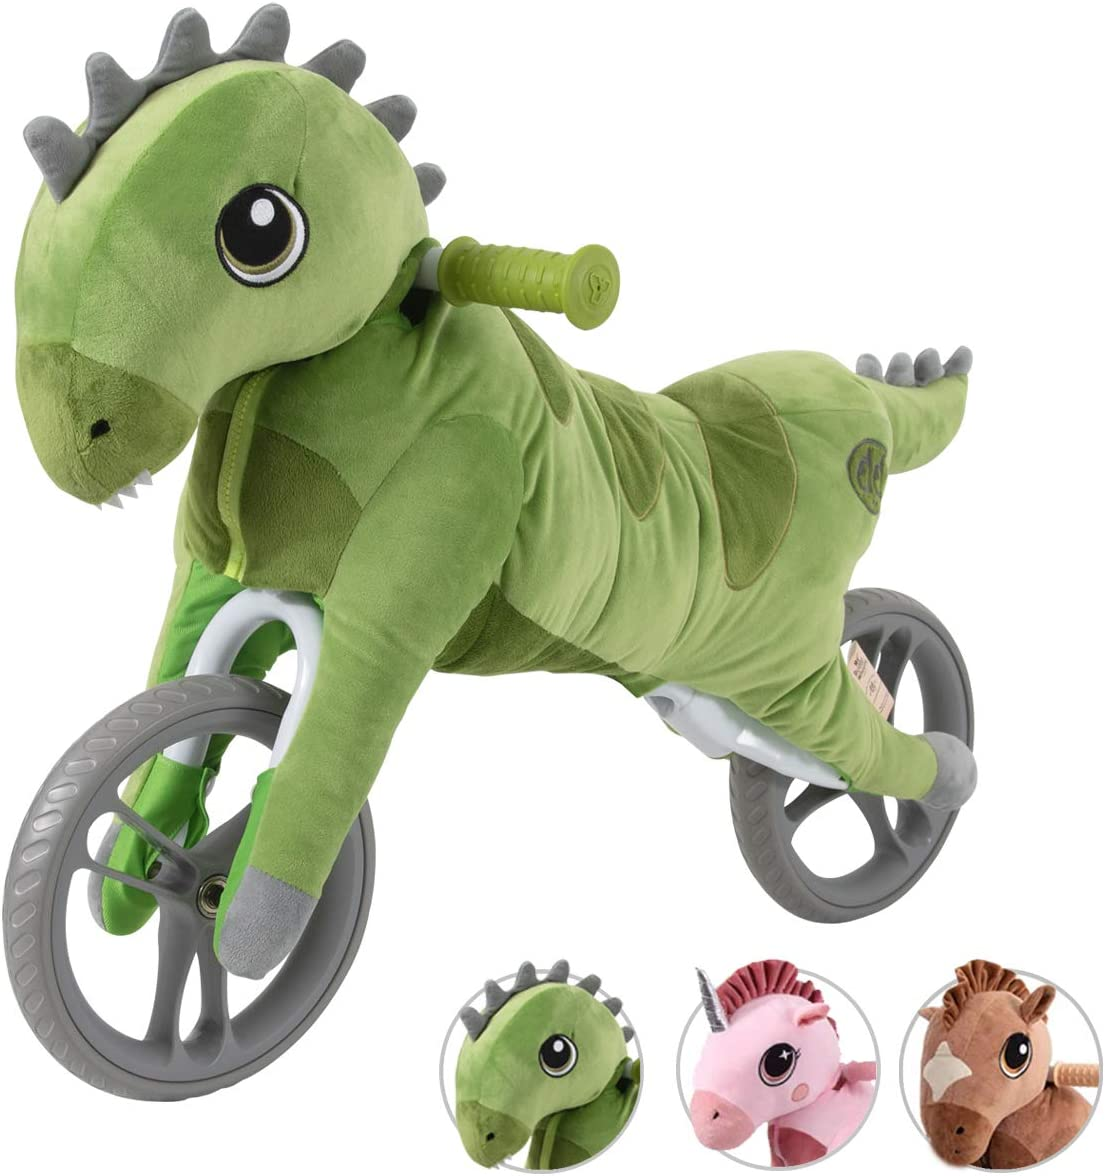 Yvolution My Buddy Wheels Dino Unicorn Horse Balance Bike with Plush Toy | Training Bicycle for Toddlers Age 2 Years +